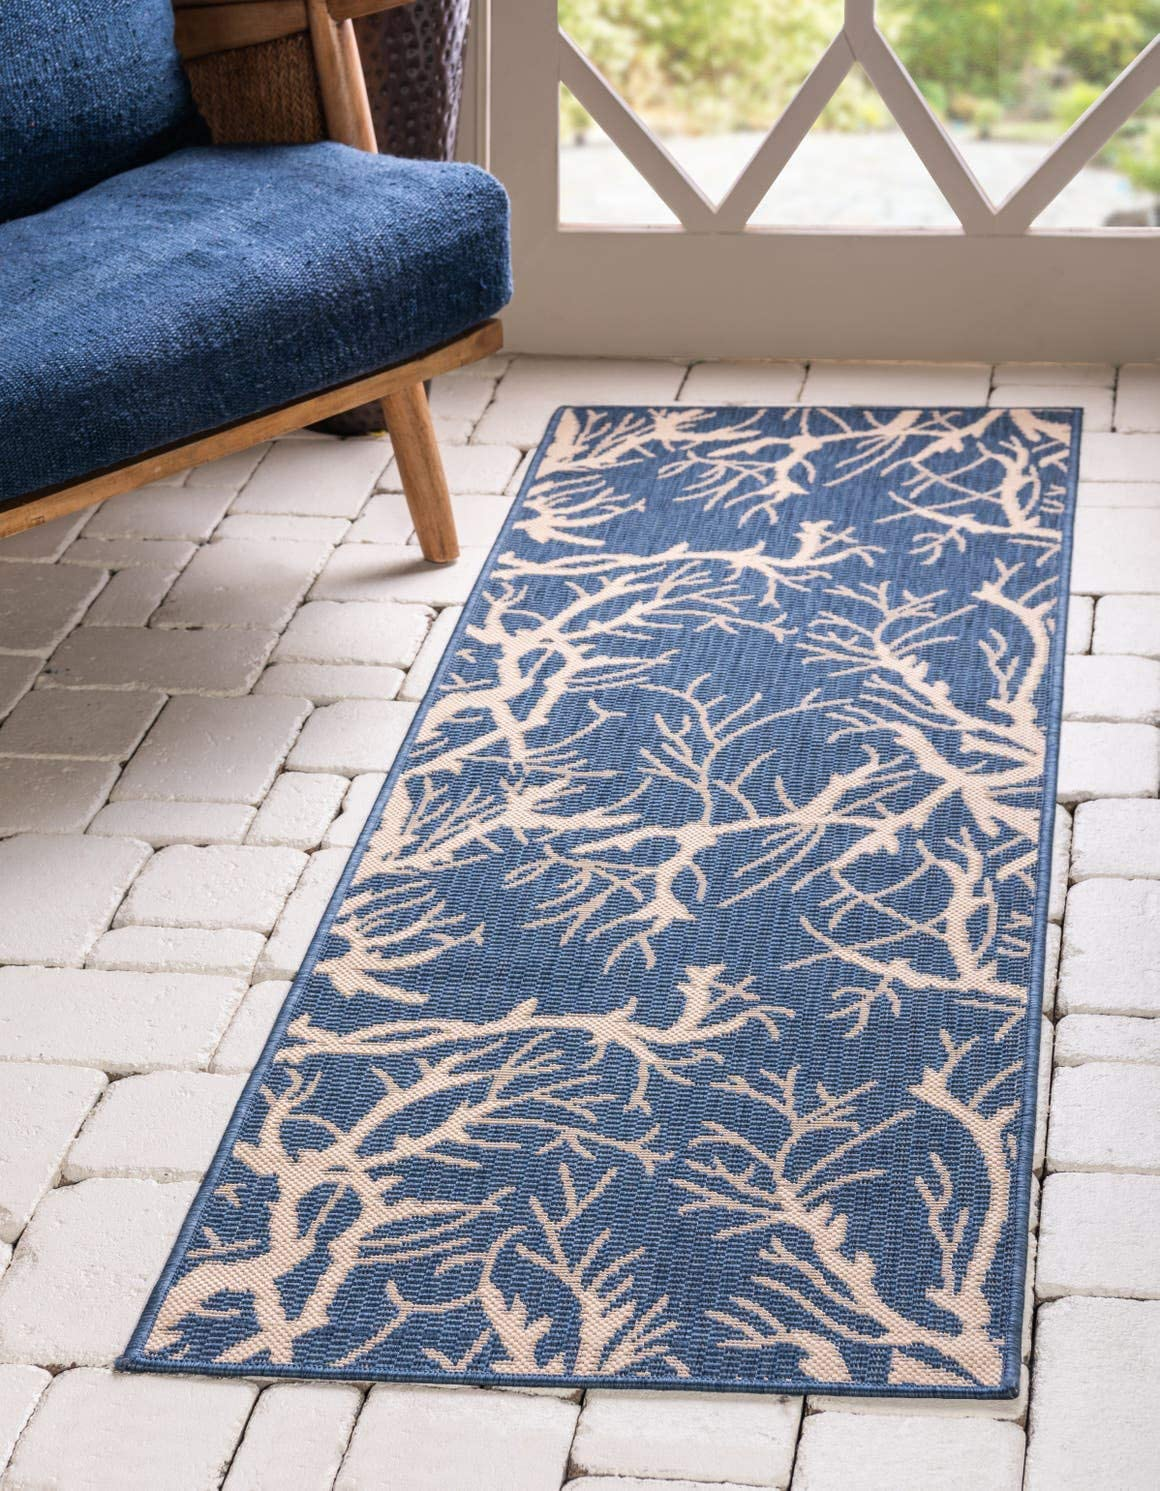 Unique Loom Outdoor Botanical Collection Abstract Pictorial Transitional Indoor and Outdoor Flatweave Blue Runner Rug 2 0 x 6 0